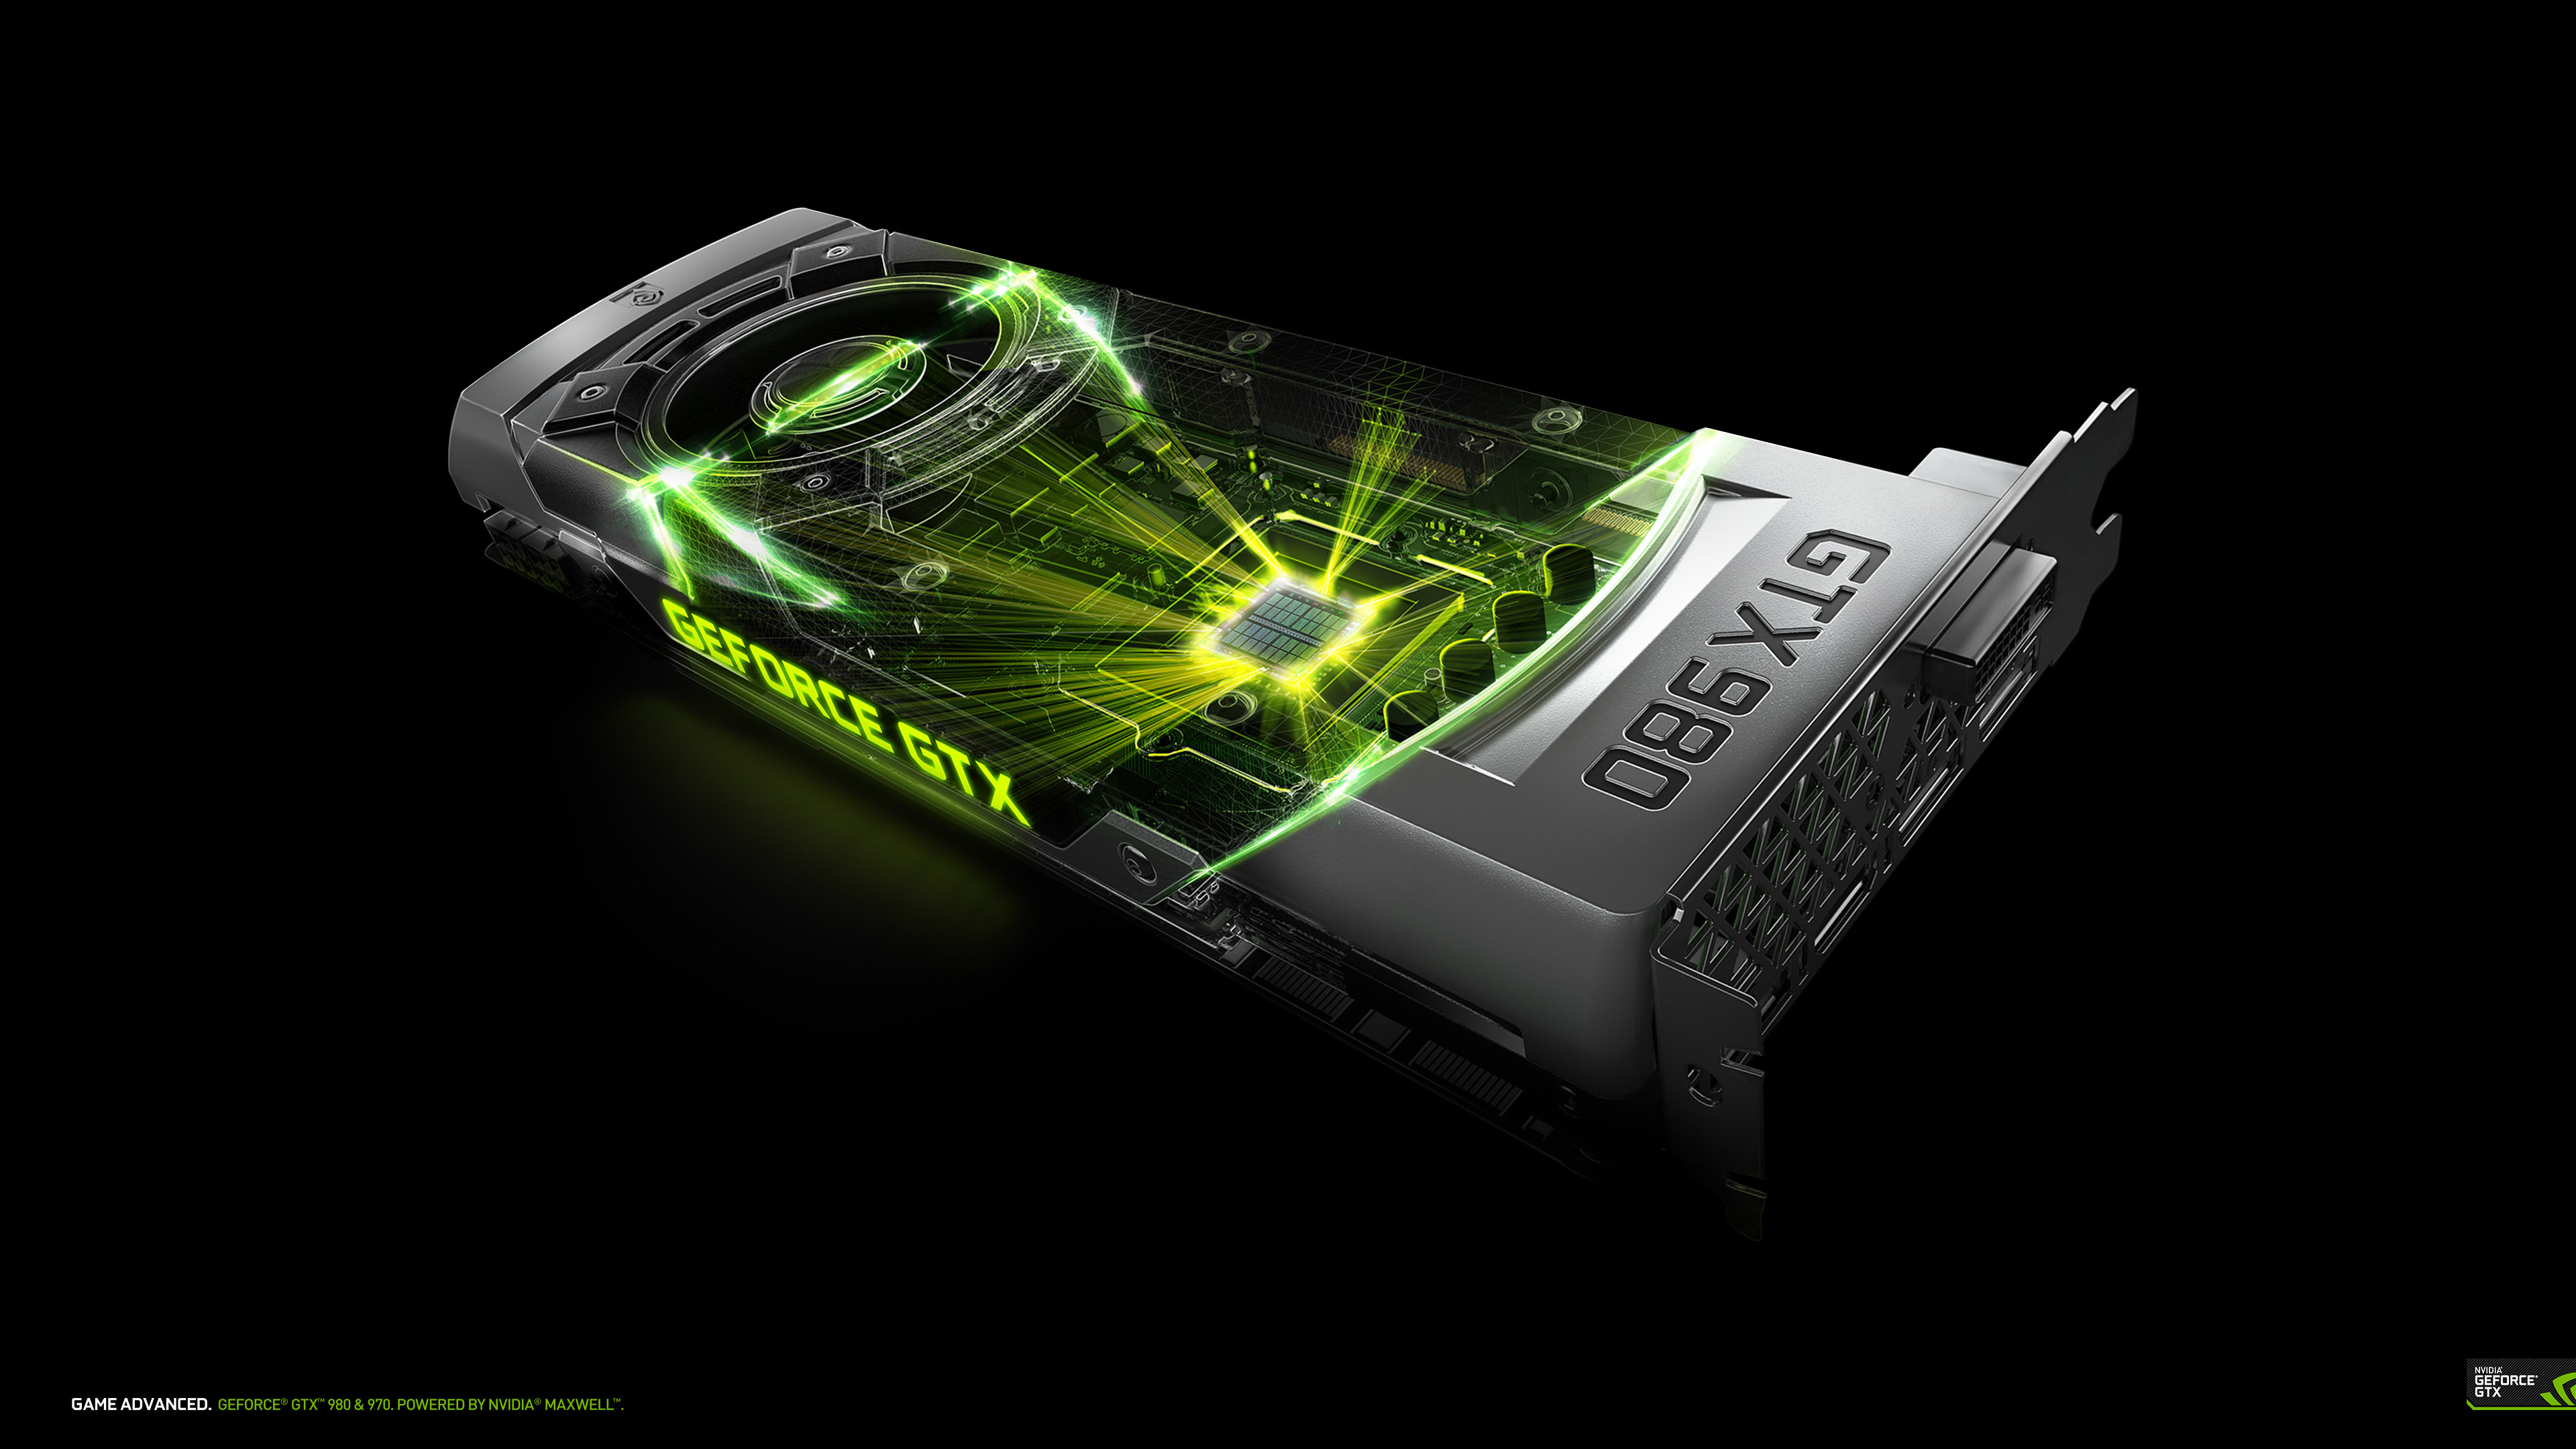 Game Advanced Download The Amazing New GeForce GTX 980 970